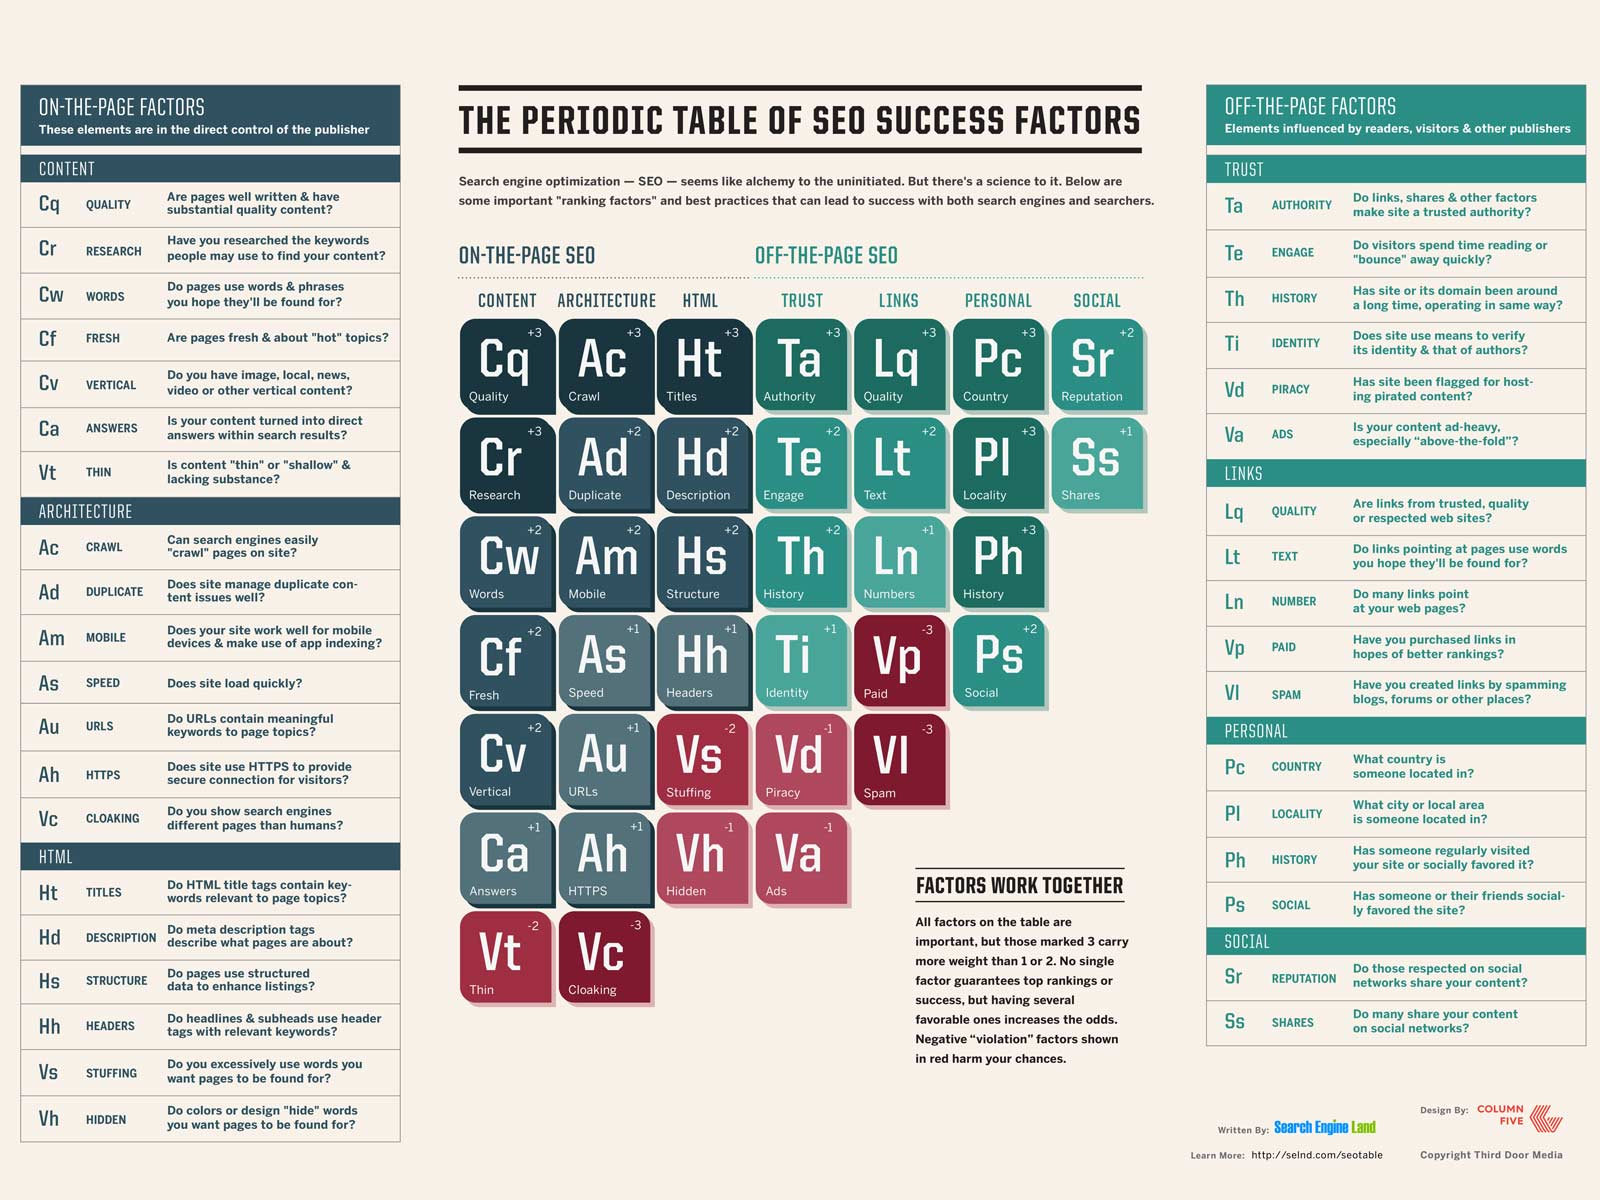 Periodic Table of SEO ranking factors 2015